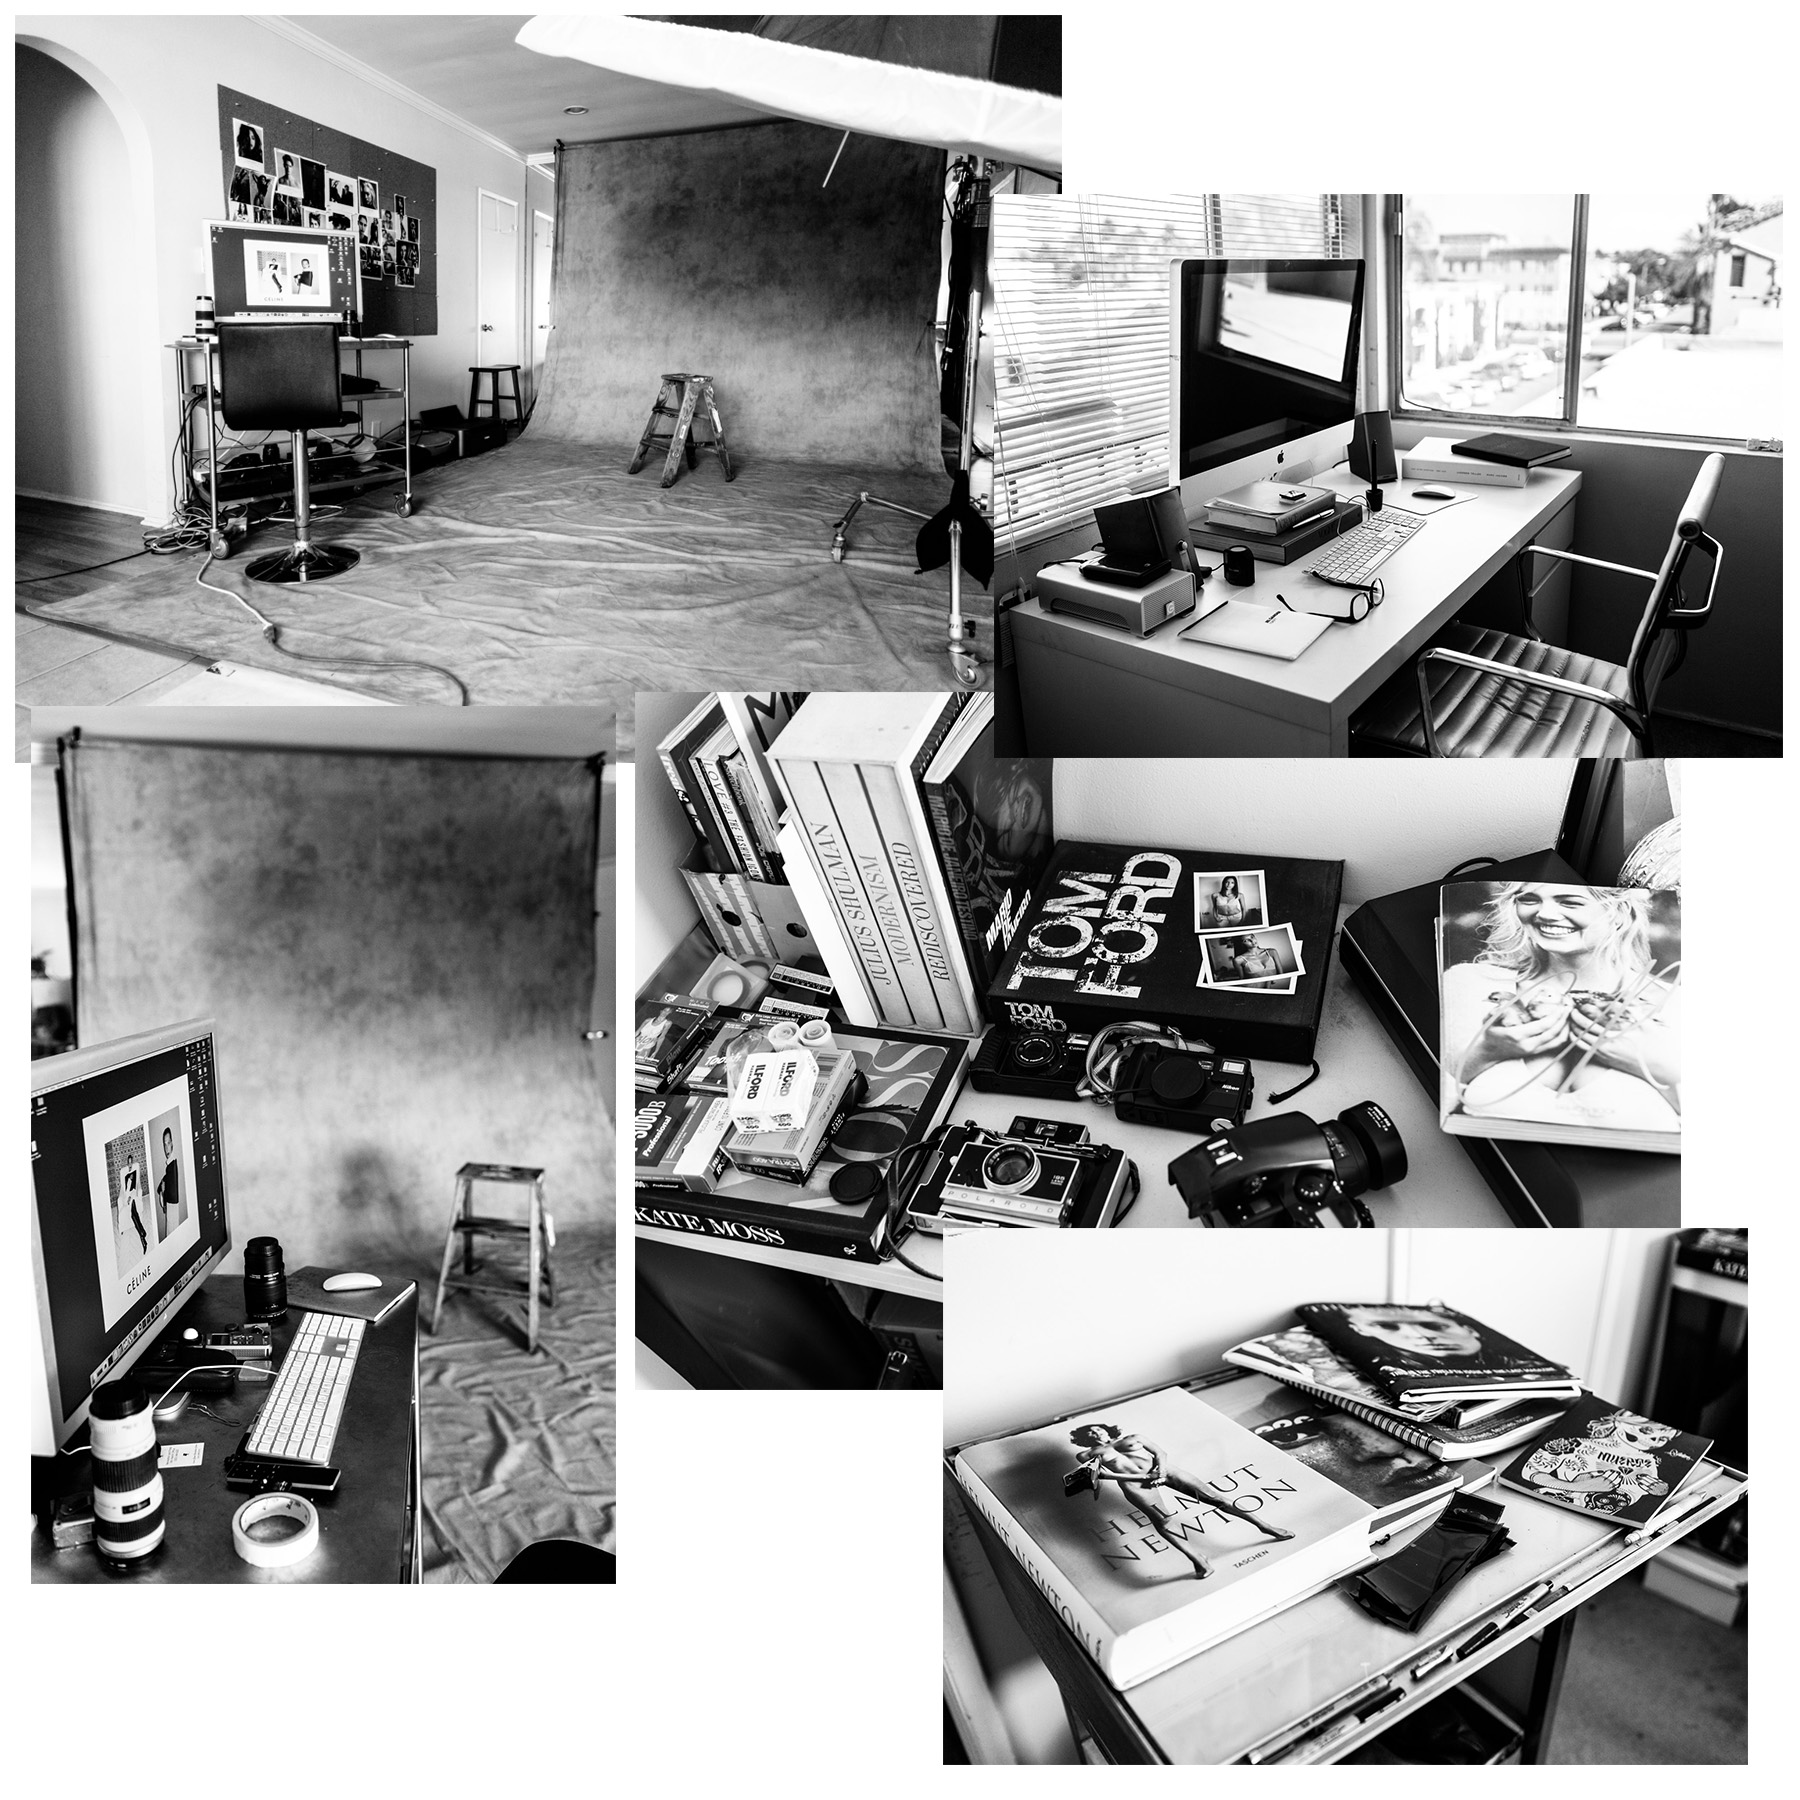 Interview-ThisISArc-NANDOESPARZA_WORKSPACE_collage-web-01